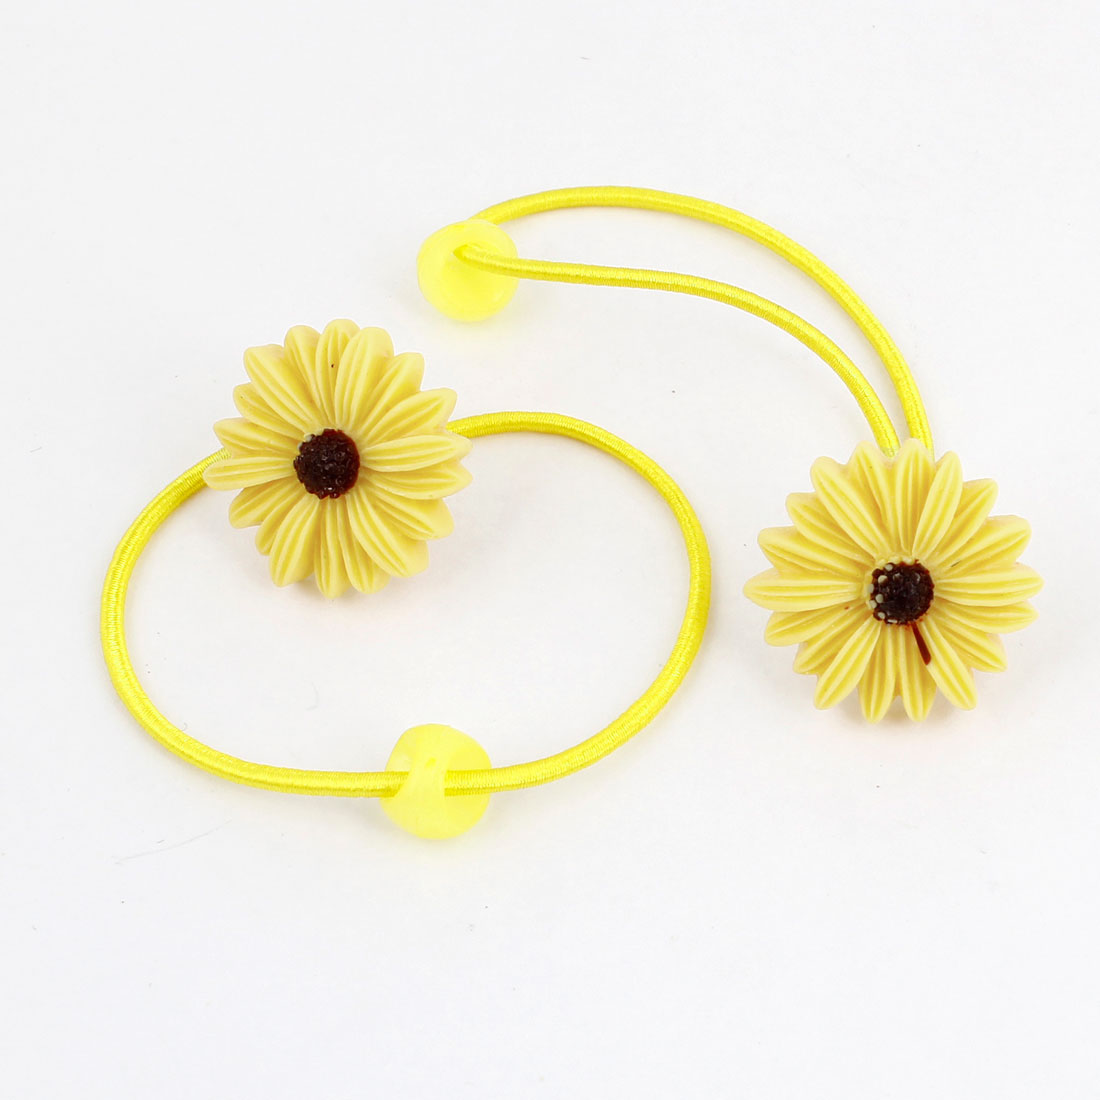 2PCS Yellow Floral Daisy Decor Stretchy Hair Band Ponytail Holder for Lady